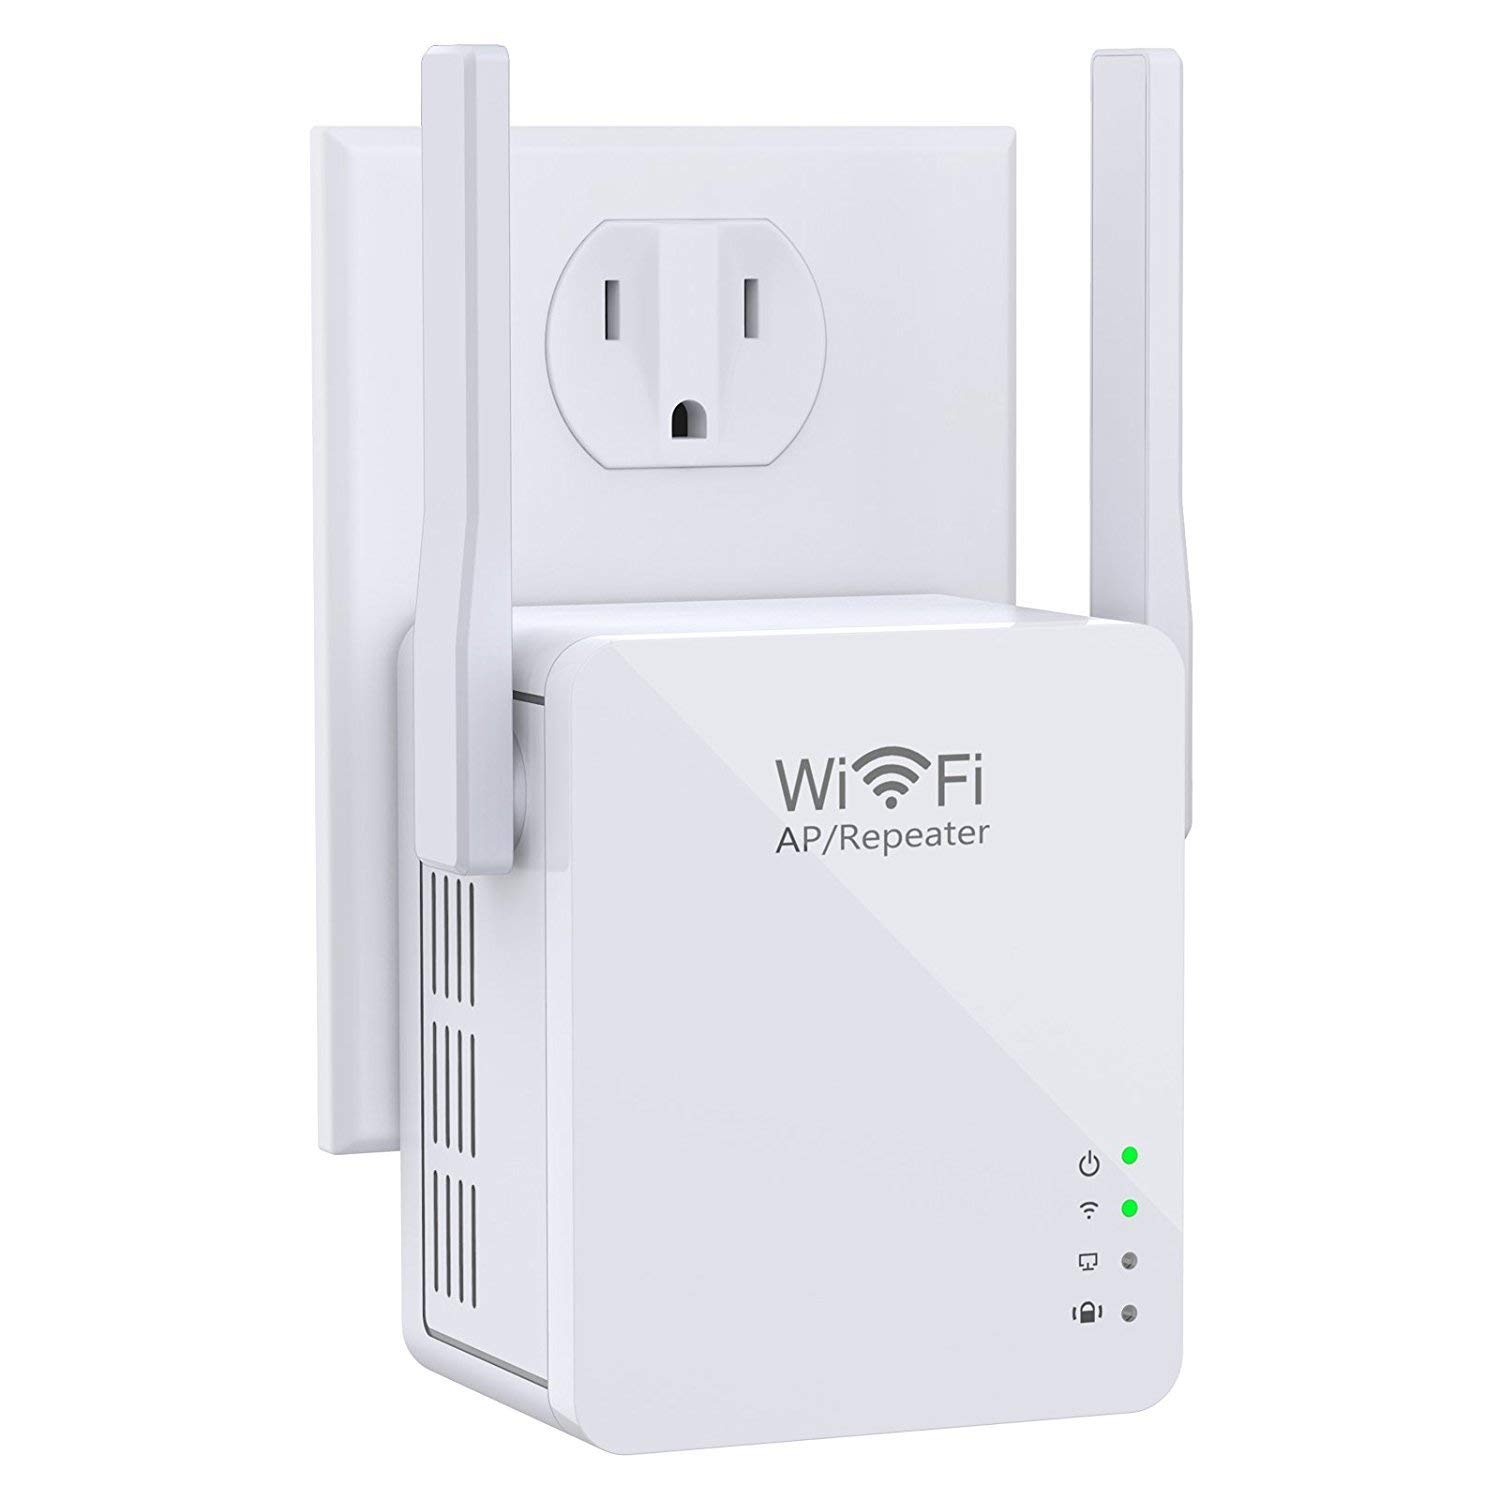 CXCase Wi-Fi Range Extender, Access Point Mode/Repeater Mode WiFi Repeater With Micro USB Port